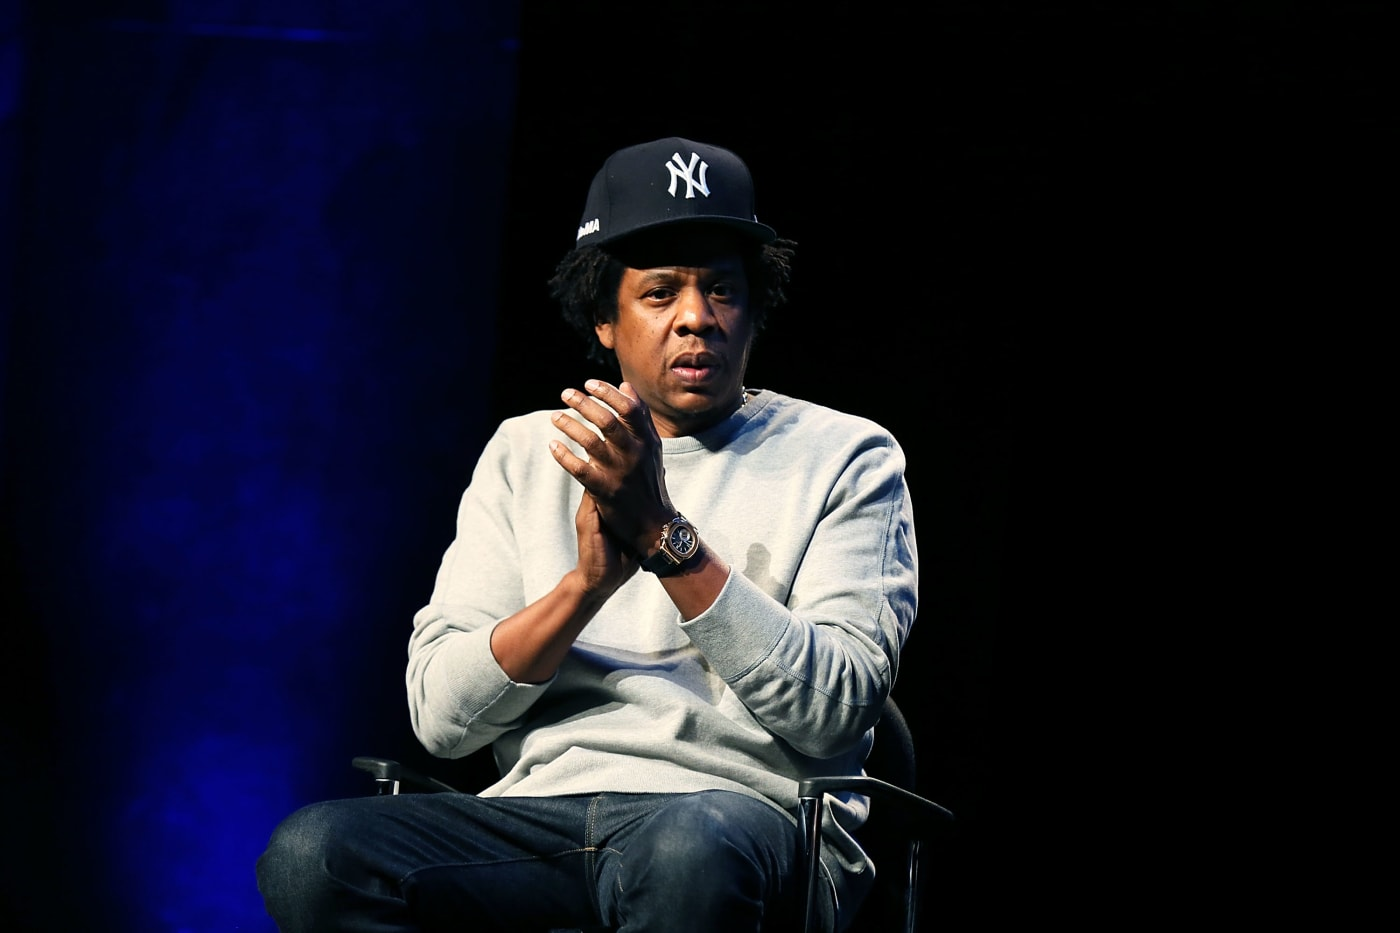 Jay-Z at conference